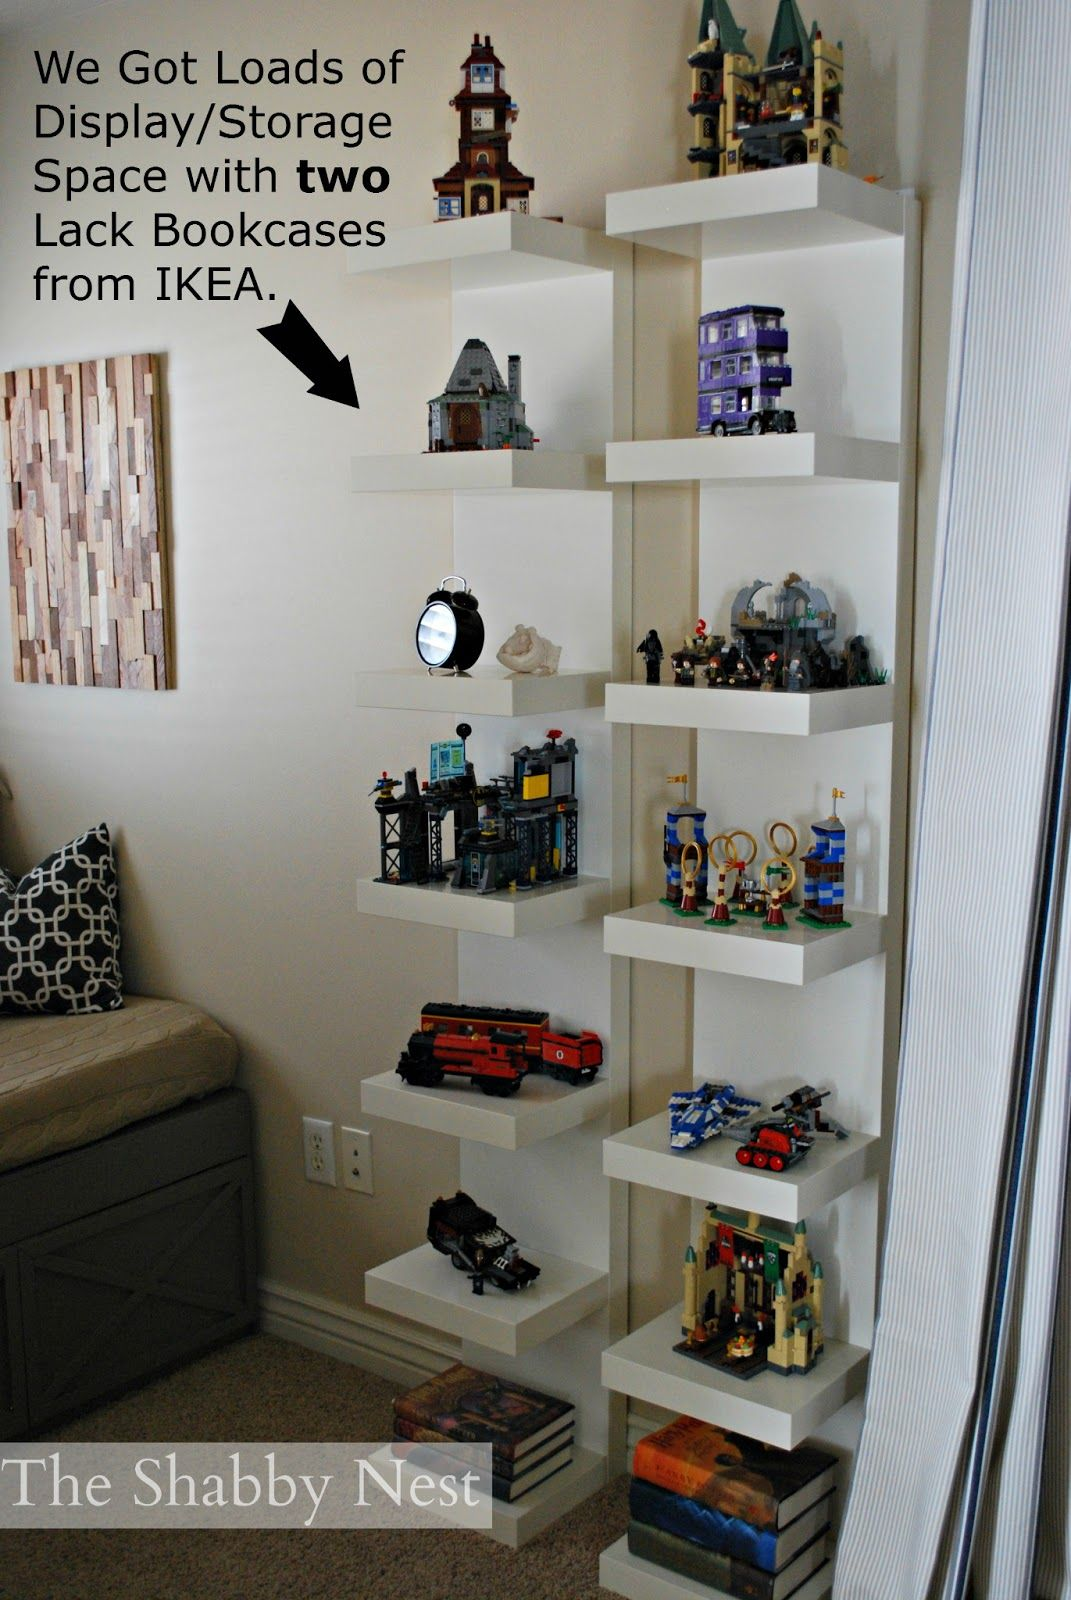 Display Lego Collection We Used Lack Bookcases To Display Boy One 39 S Collection Of Legos And